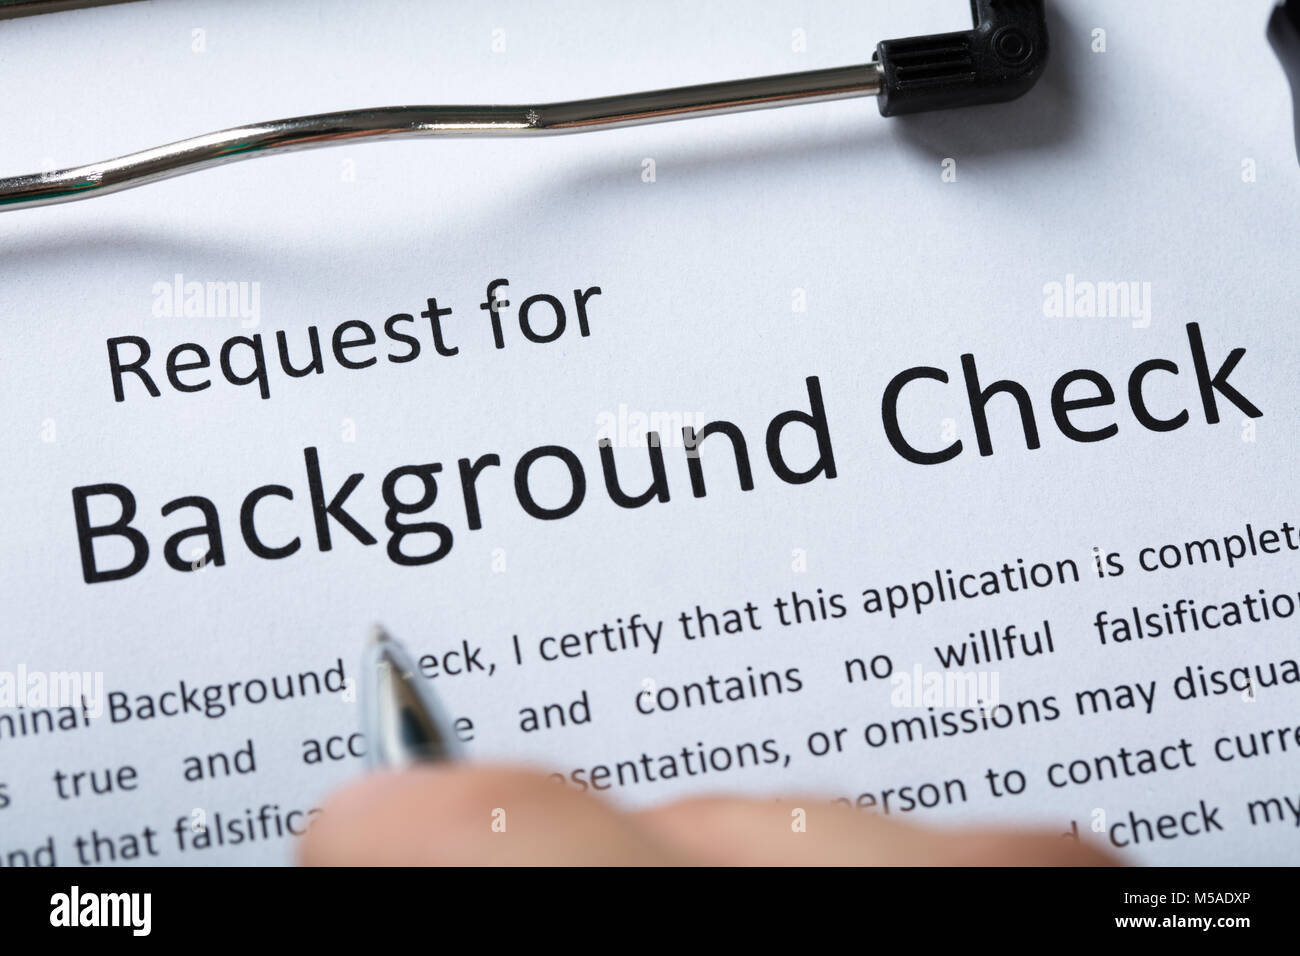 High Angel View Of Criminal Background Check Application Form With Pen - Stock Image